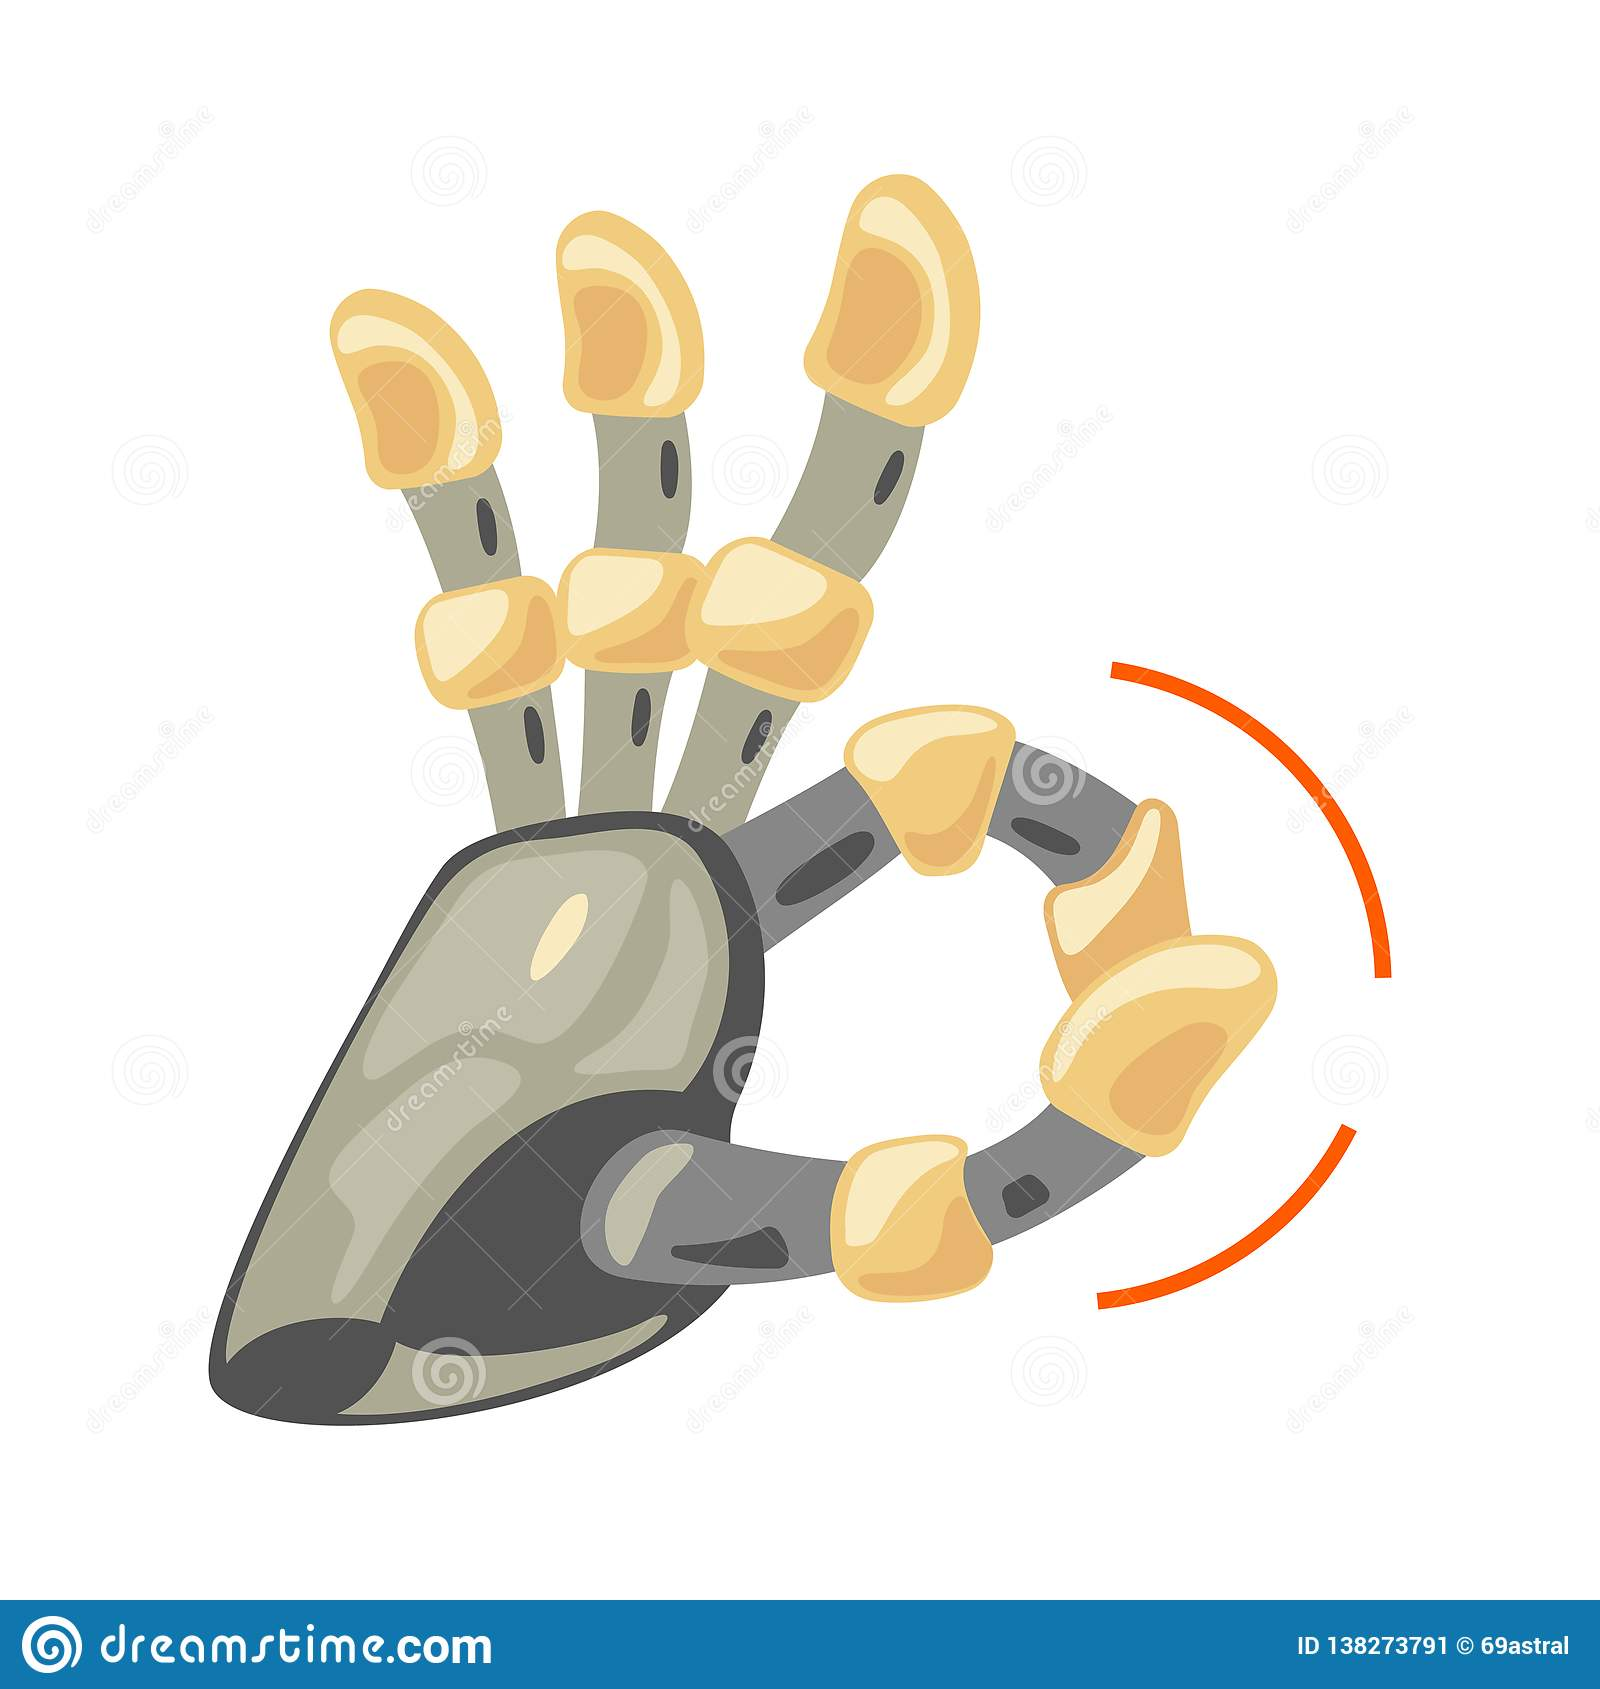 Robot hand. Mechanical technology machine engineering symbol. Hand gestures. Ok. Cool sign. Good sign. Peace. Excellent.